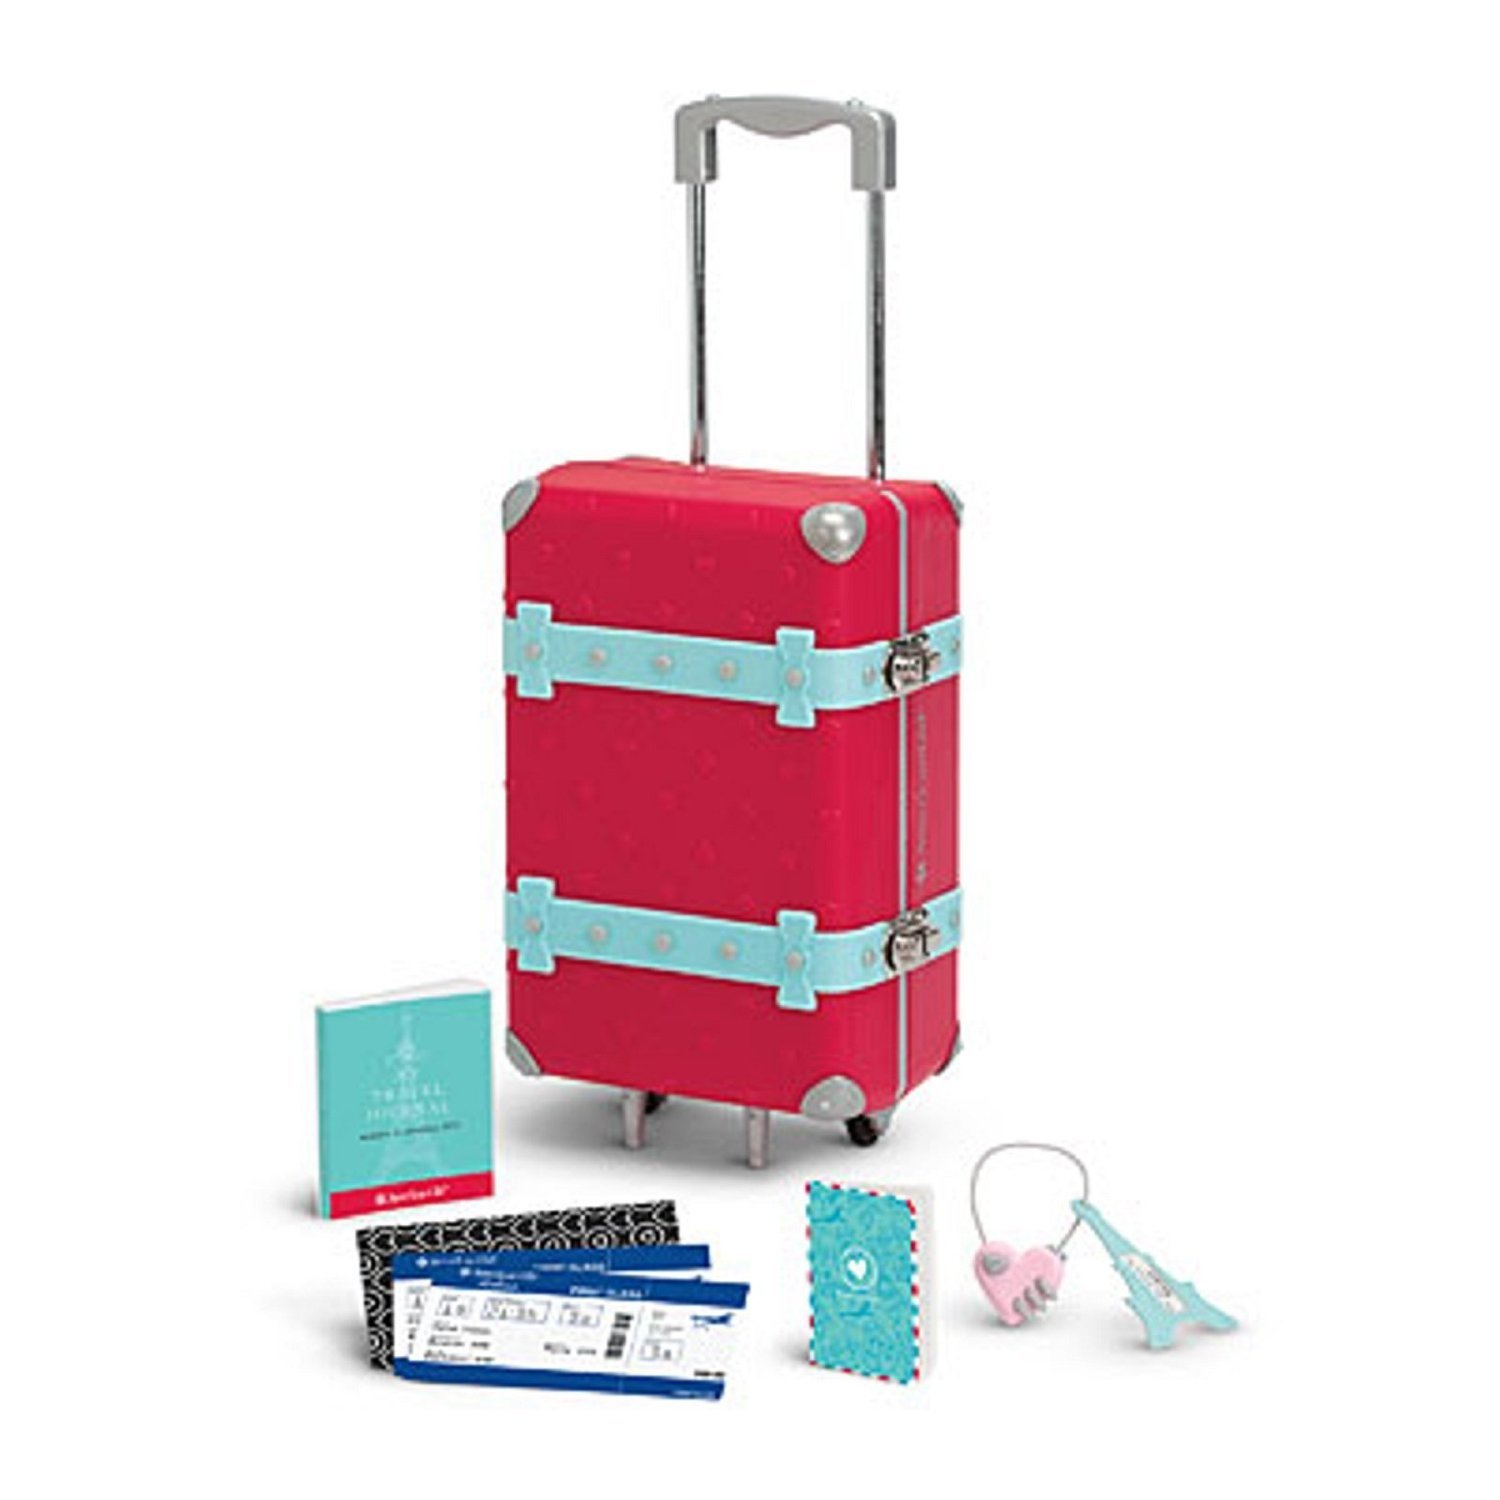 American Girl Grace - Grace's Travel Set - American Girl of 2015